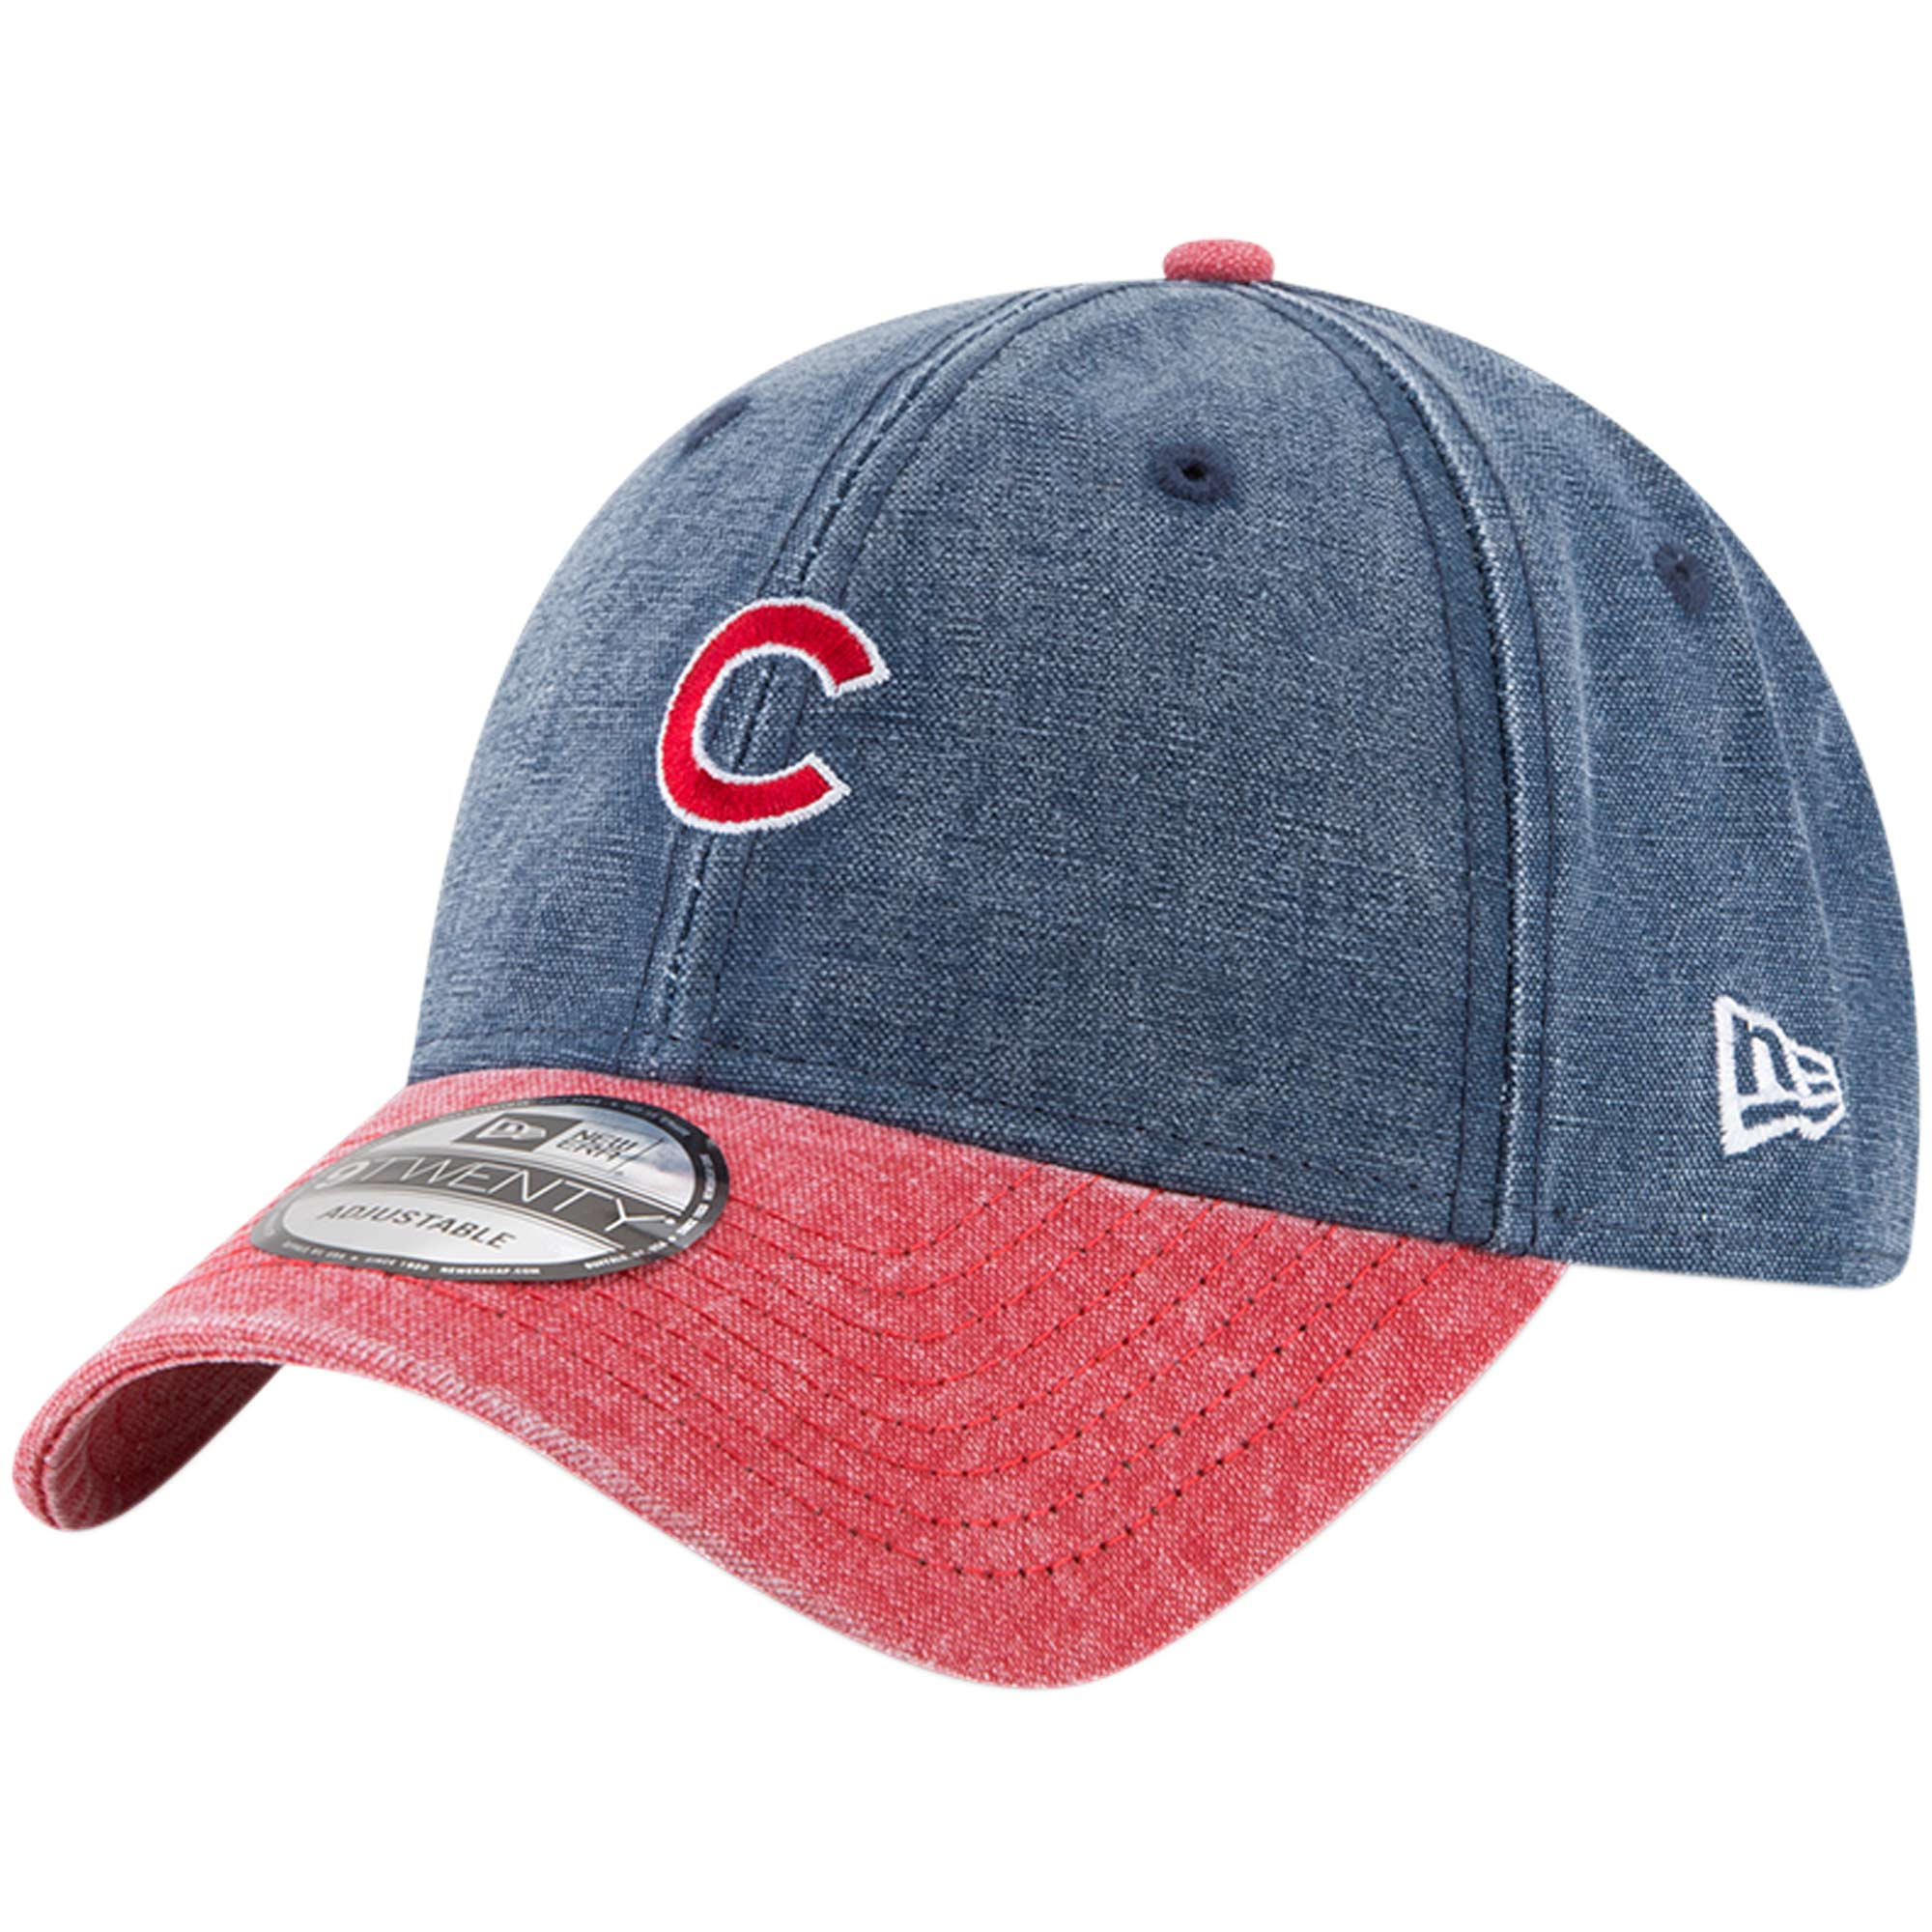 Chicago Cubs New Era Rugged 9TWENTY Adjustable Hat - Royal - OSFA